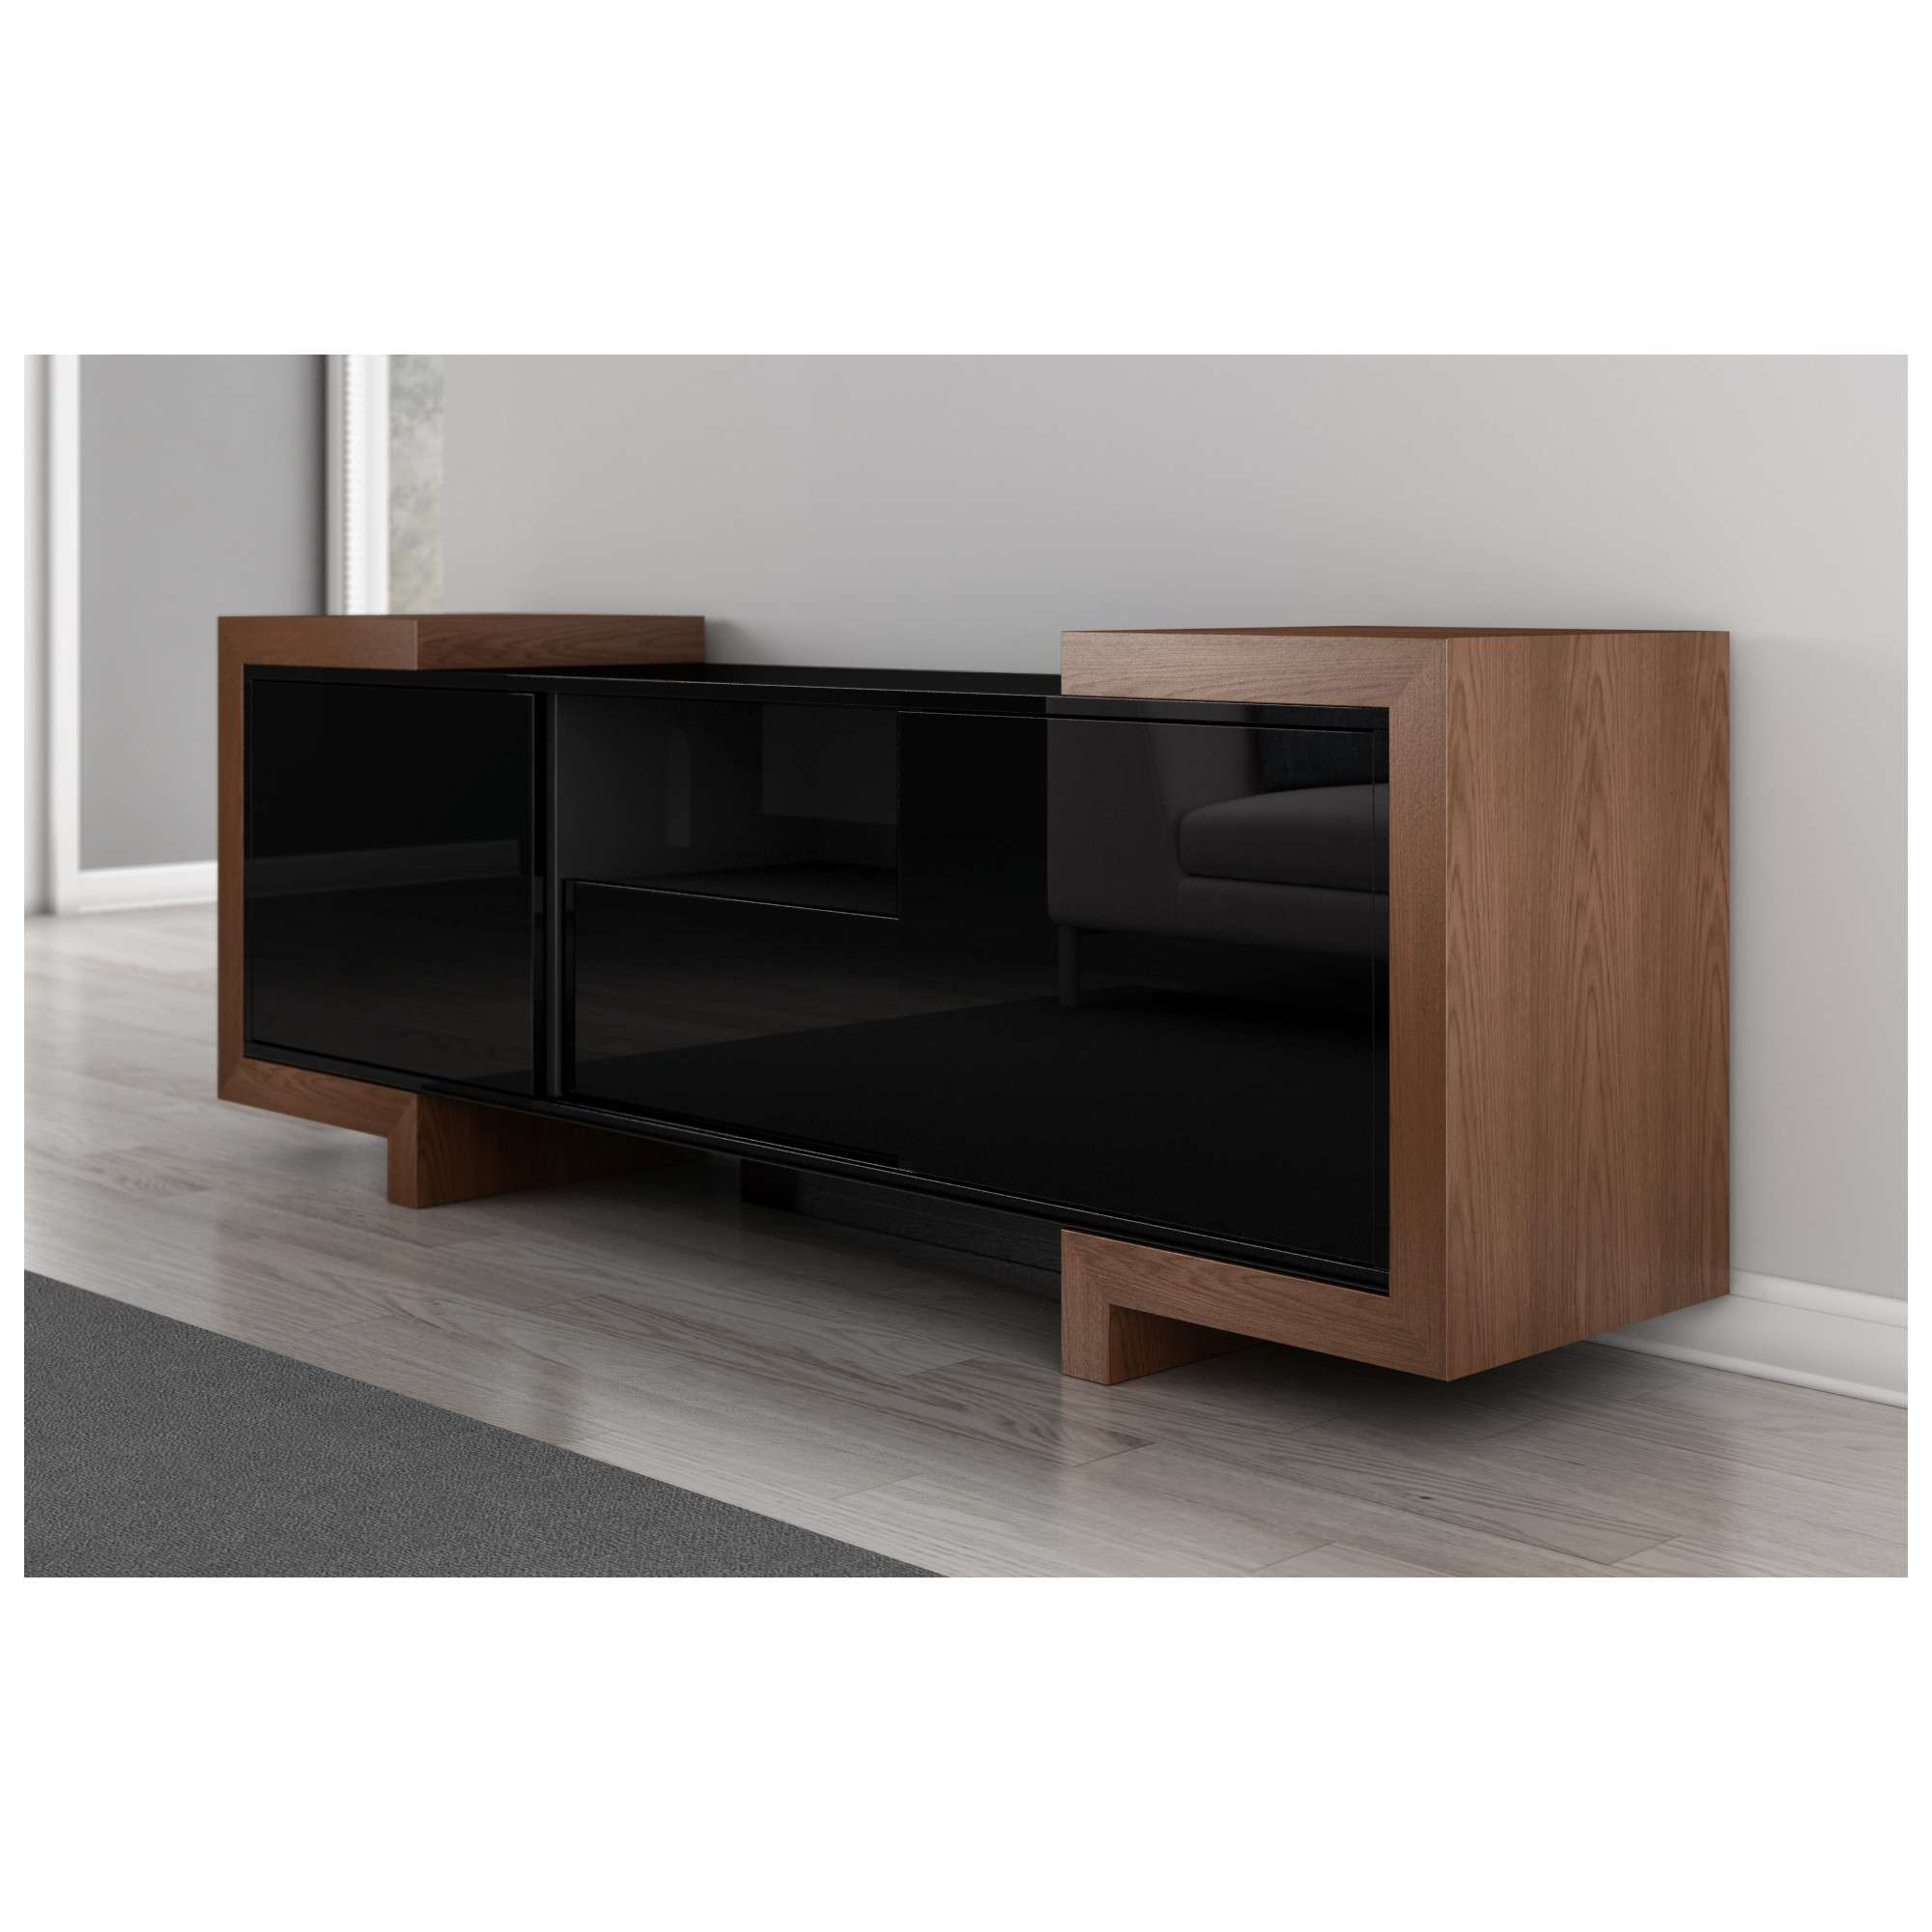 "Furnitech Ft75Fa 75"" Tv Stand Contemporary Media Cabinet In High With Contemporary Oak Tv Stands (View 3 of 15)"